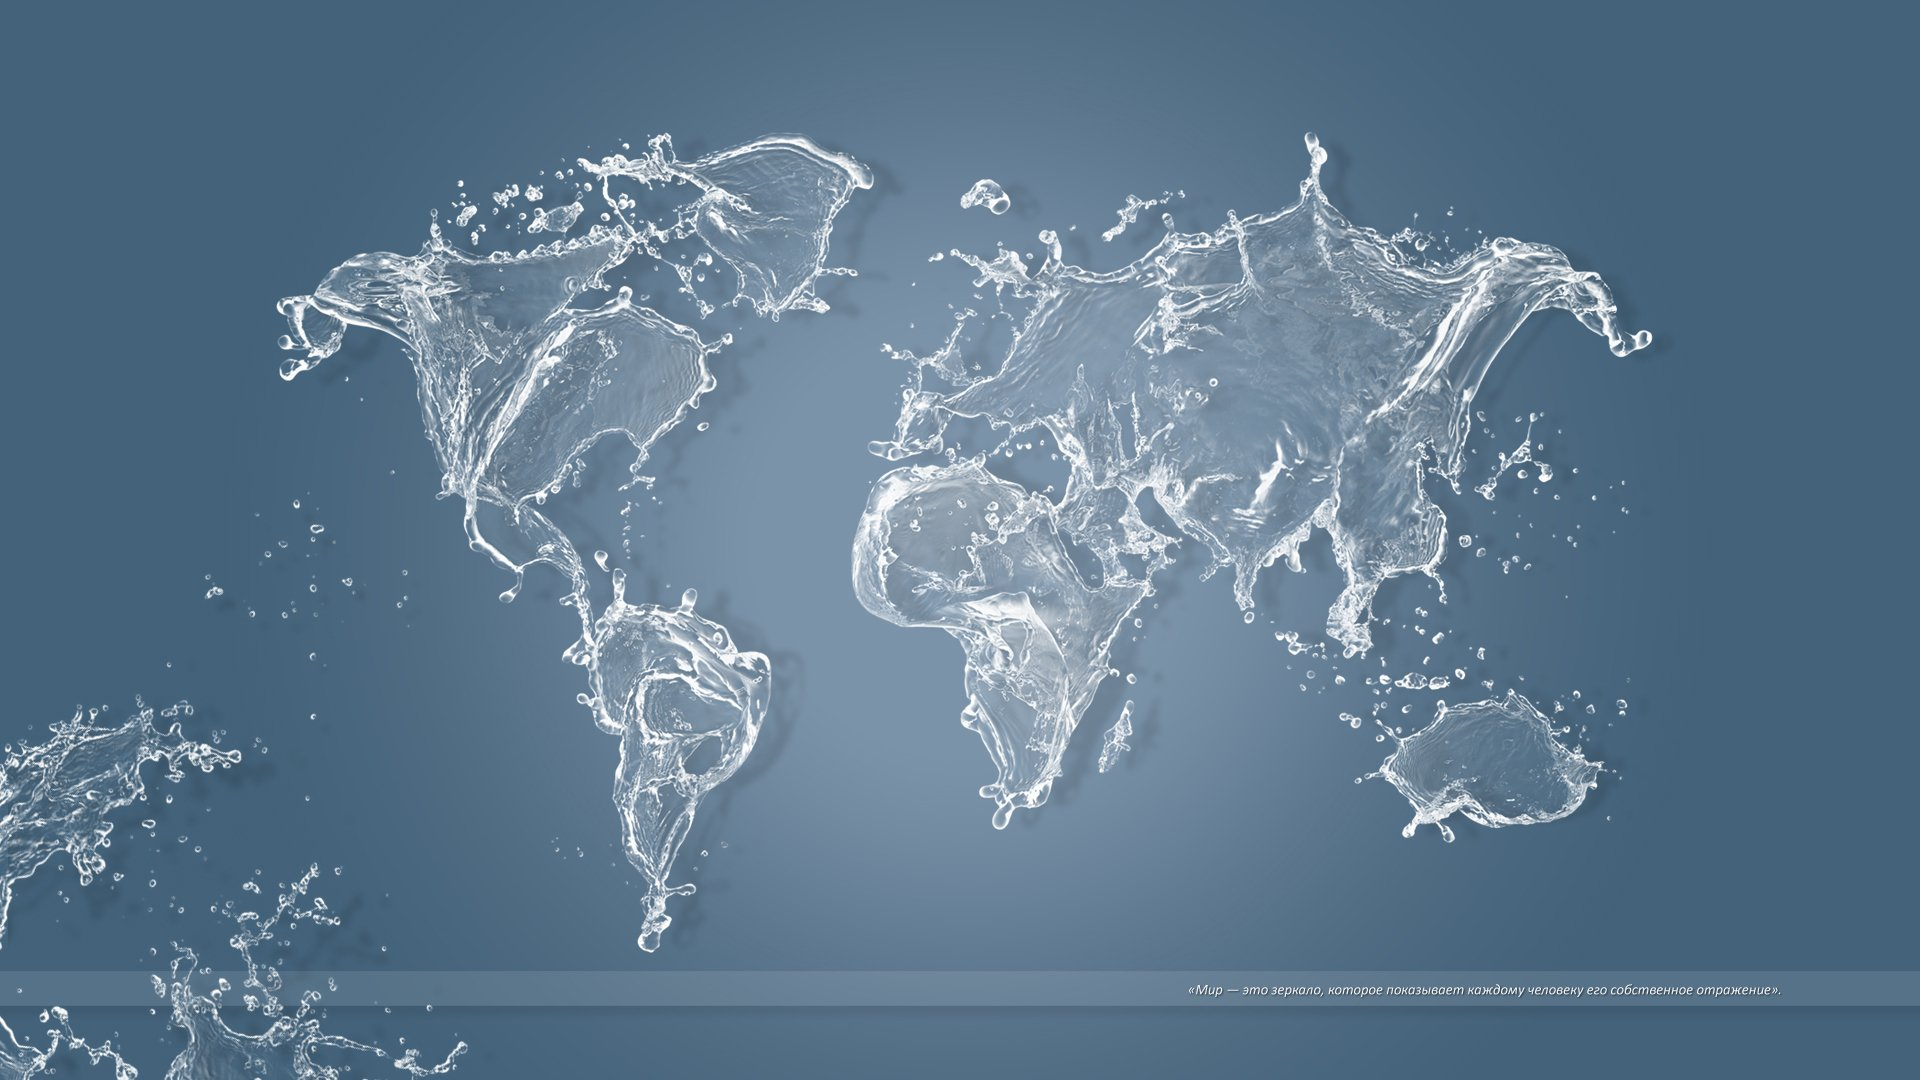 151 world map hd wallpapers background images wallpaper abyss hd wallpaper background image id228417 gumiabroncs Image collections